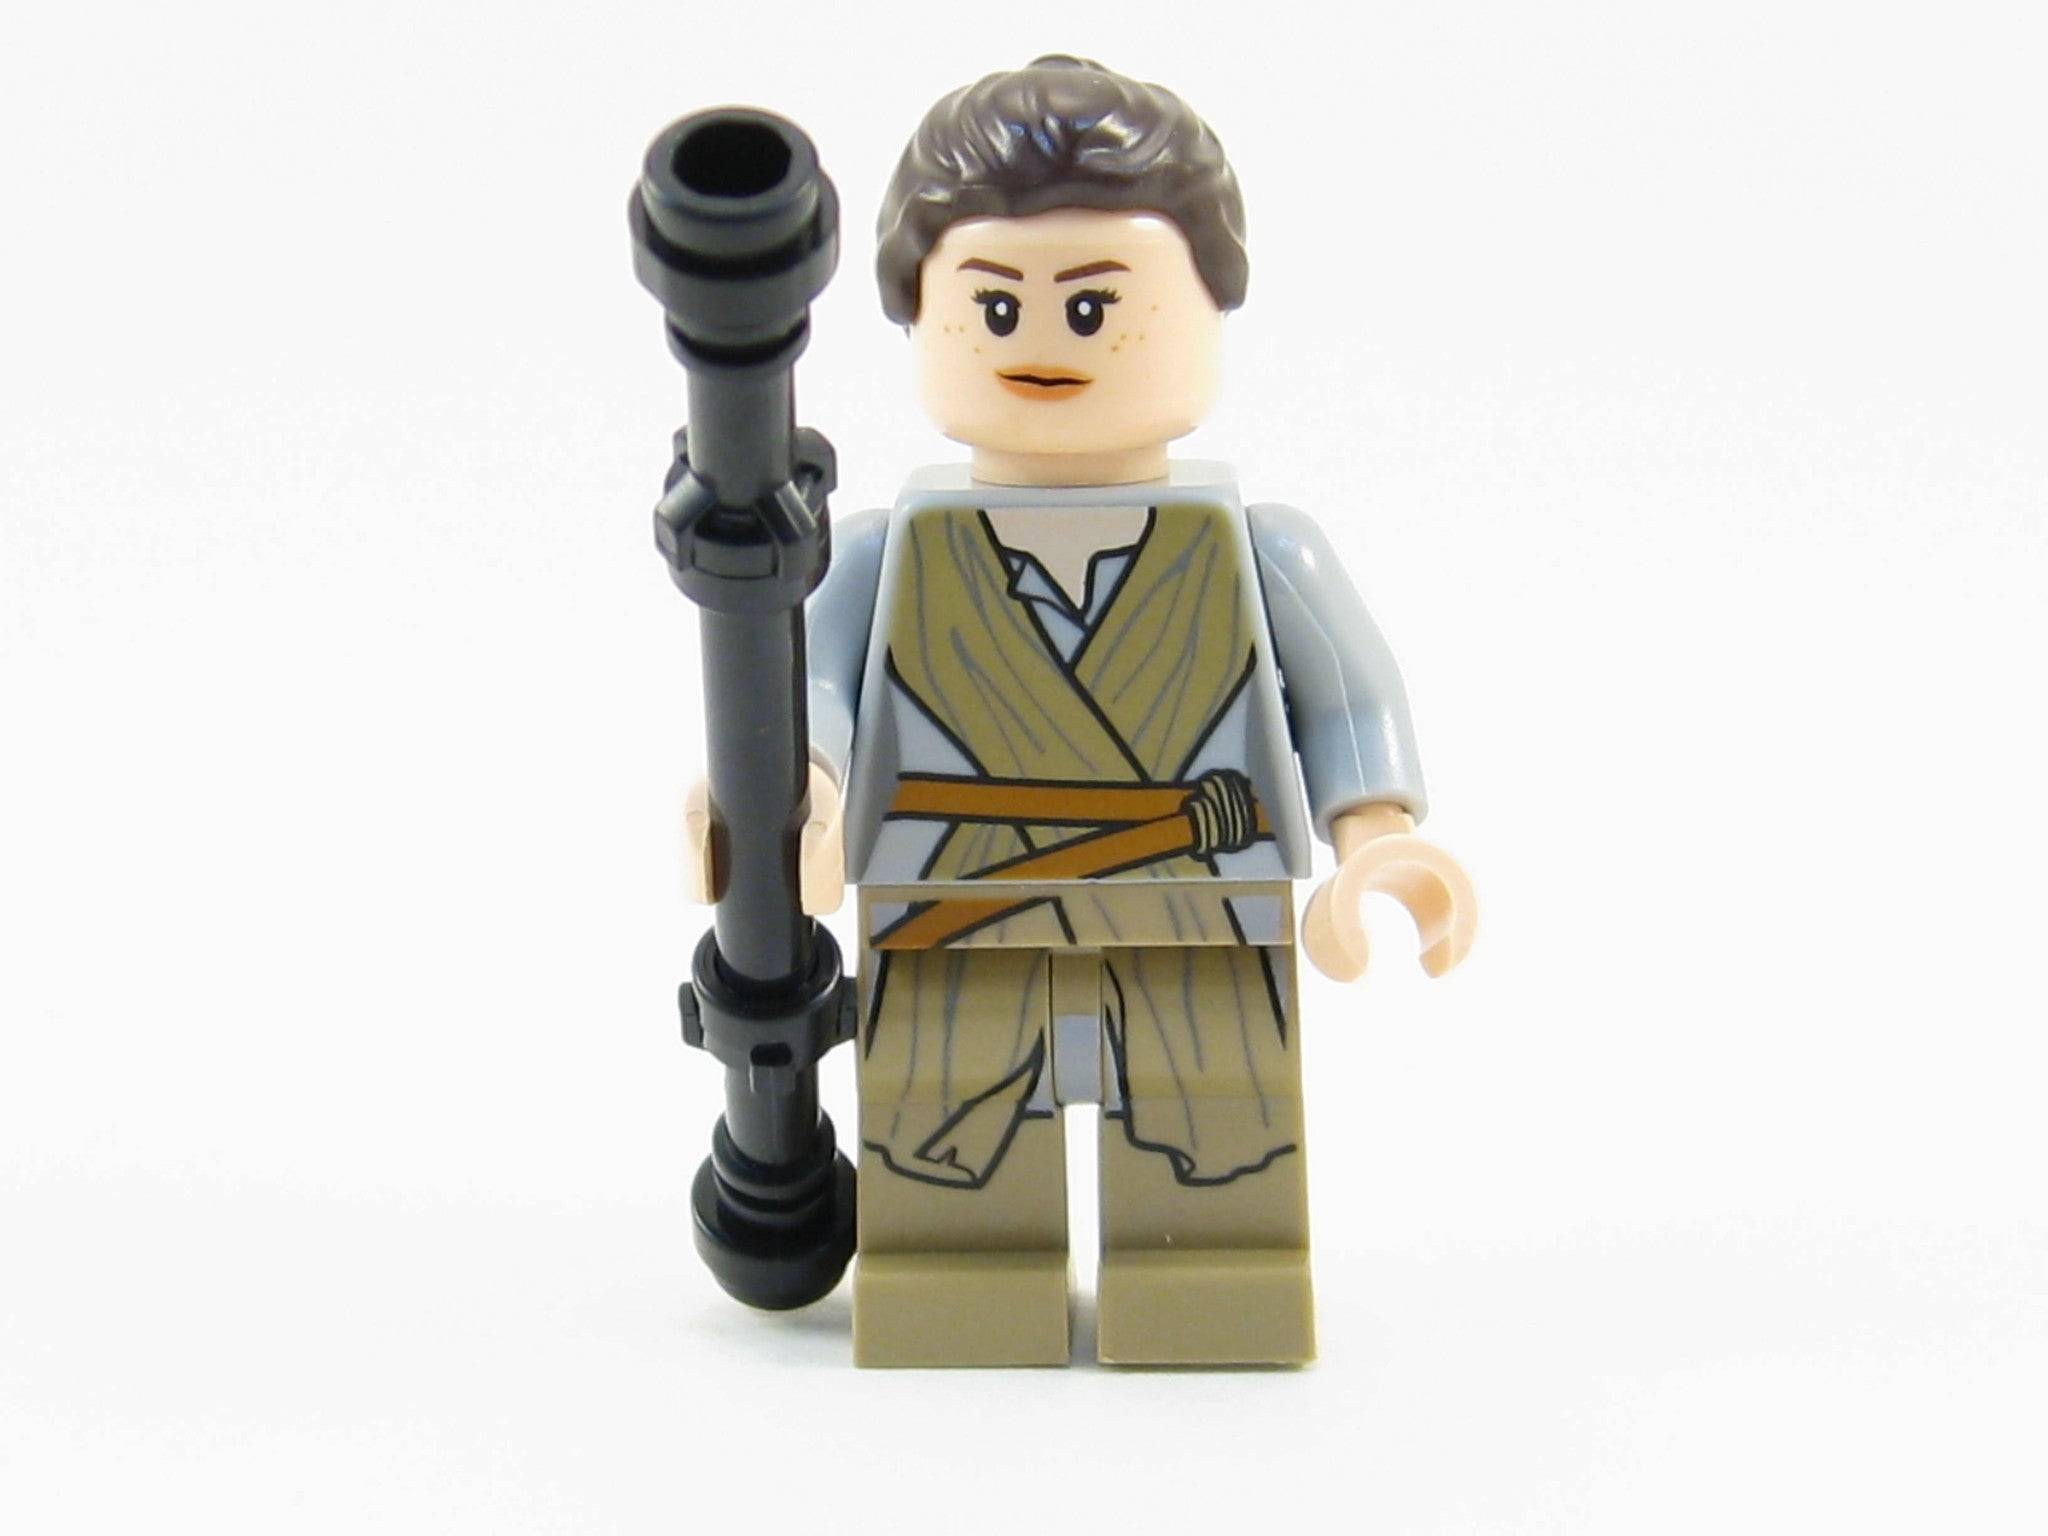 LEGO Star Wars Force Awakens Rey Minifigure 75148 Minifig Ep. 7